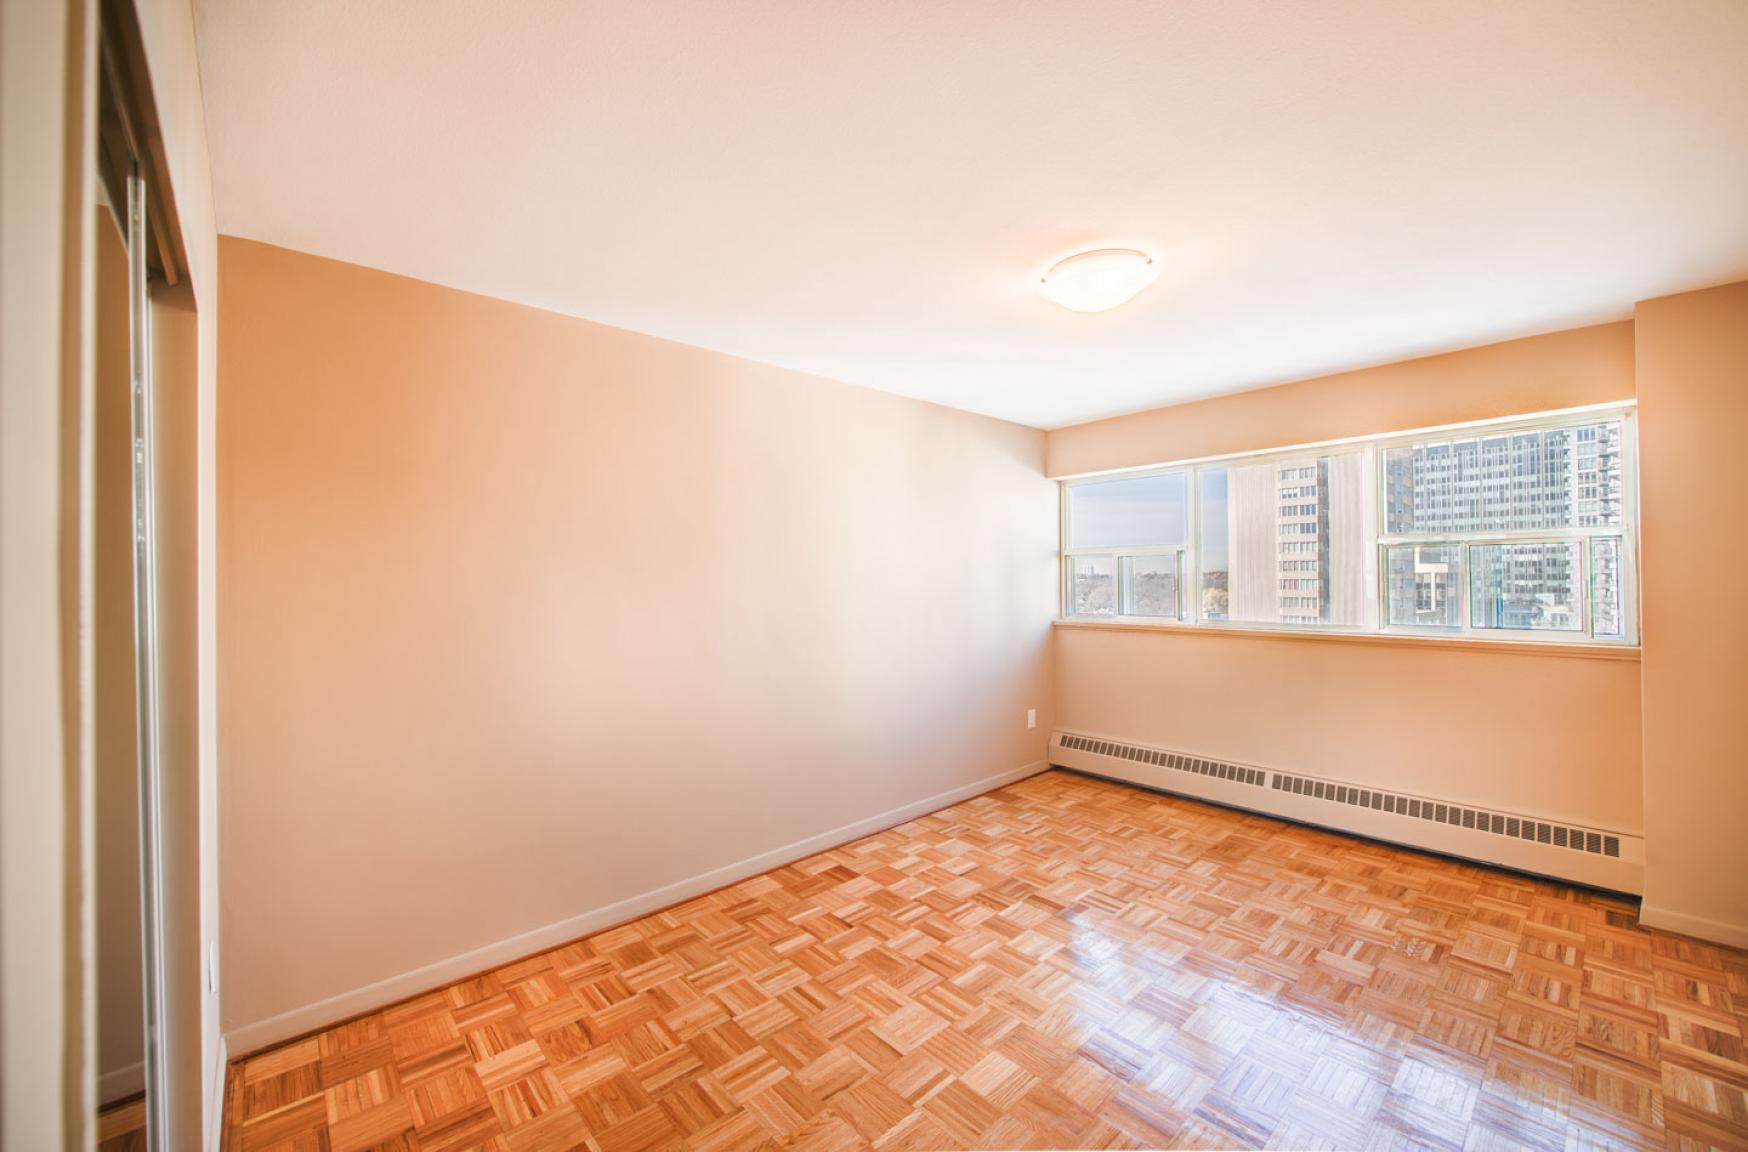 Studio / Bachelor Apartments for rent in Toronto at Dunfield Tower - Photo 18 - RentersPages – L138878